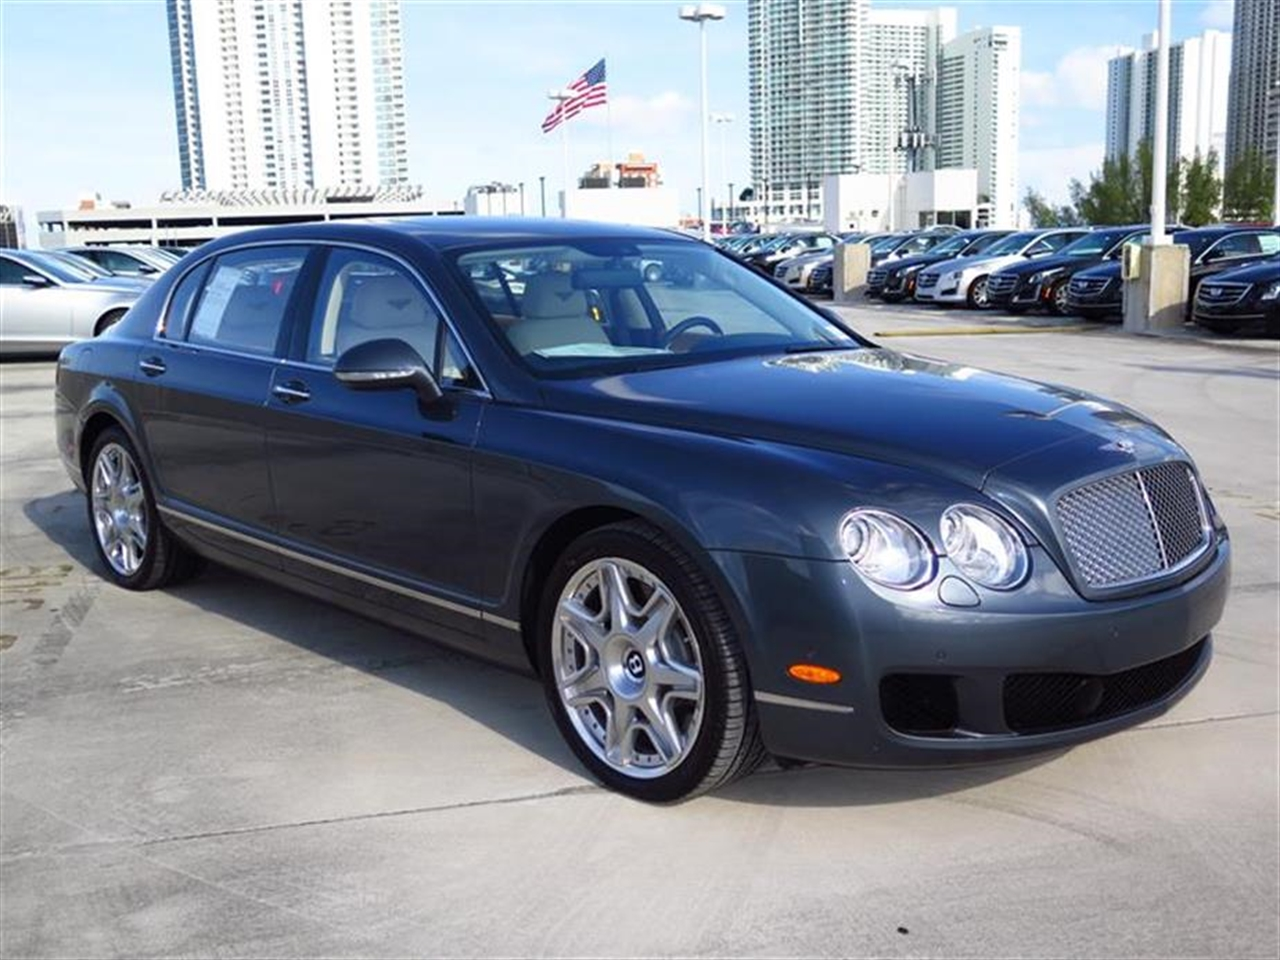 2013 BENTLEY CONTINENTAL FLYING SPUR 4dr Sdn 172 miles 4-spoke monotone leather trimmed steering w